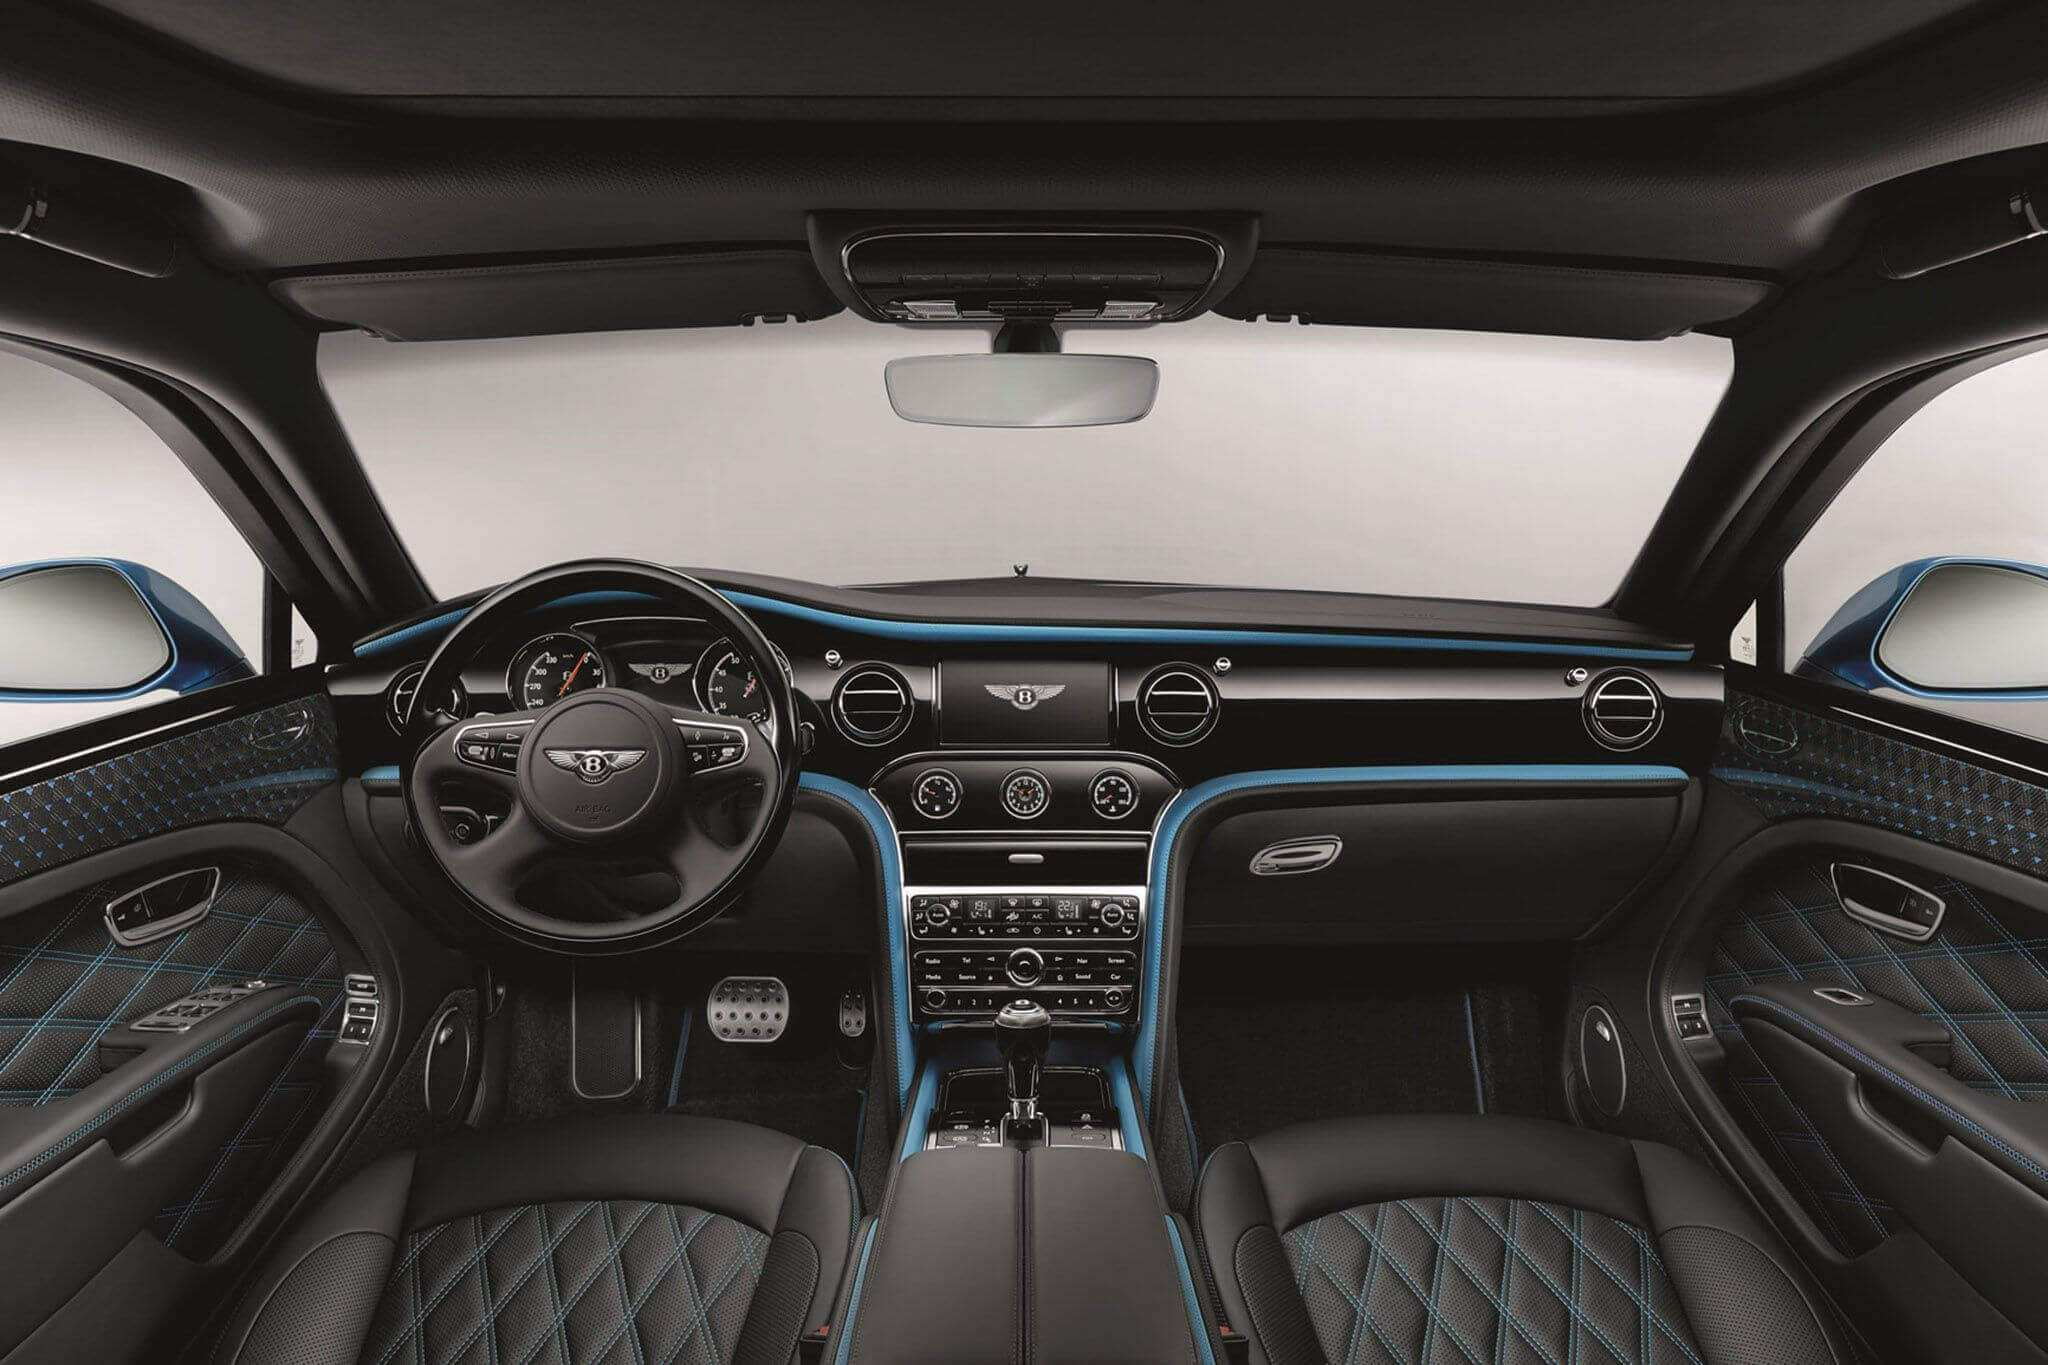 58 Gallery of 2019 Bentley Flying Spur Interior Photos with 2019 Bentley Flying Spur Interior